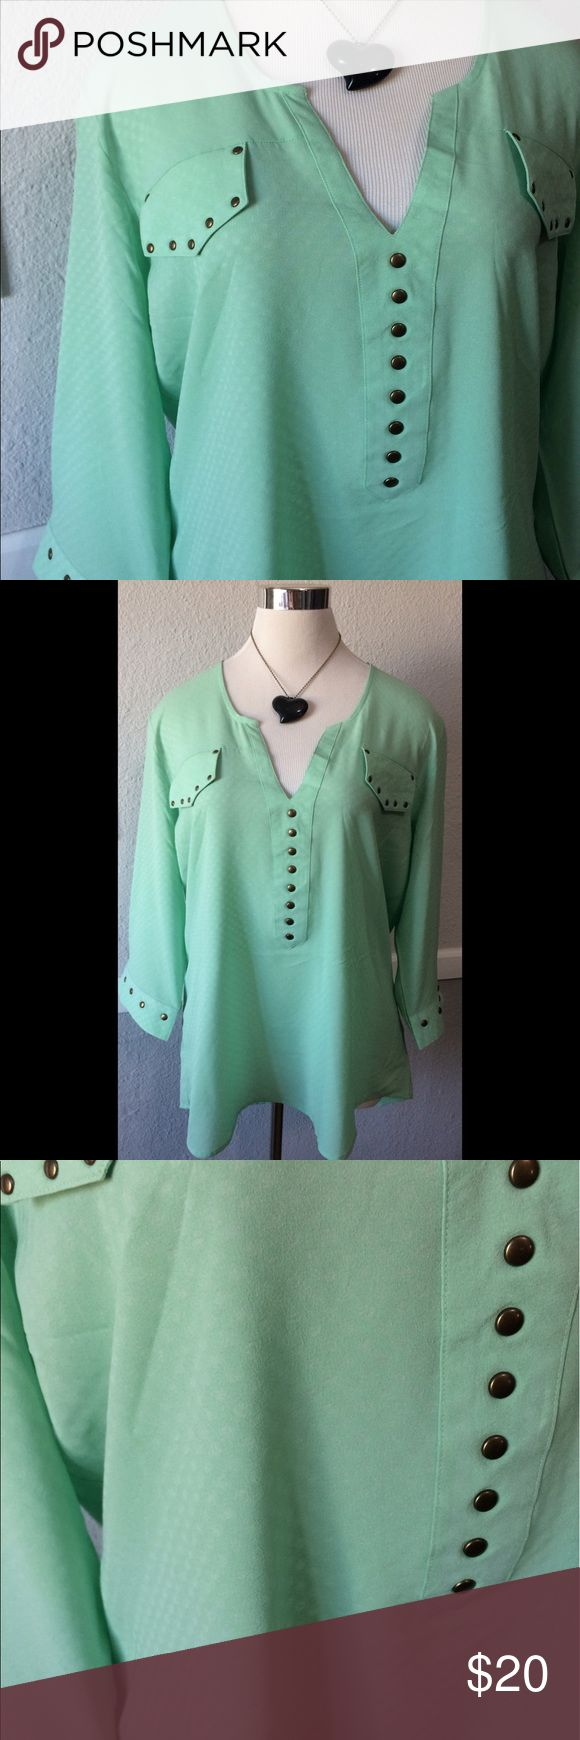 Unique Mint Blouse With Brass Details Large Like new. Semi sheer. Subtle Polka Dot. Non functional pockets (only flaps). Marked XL. Might be juniors as it fits woman's Large rock 47 Tops Blouses